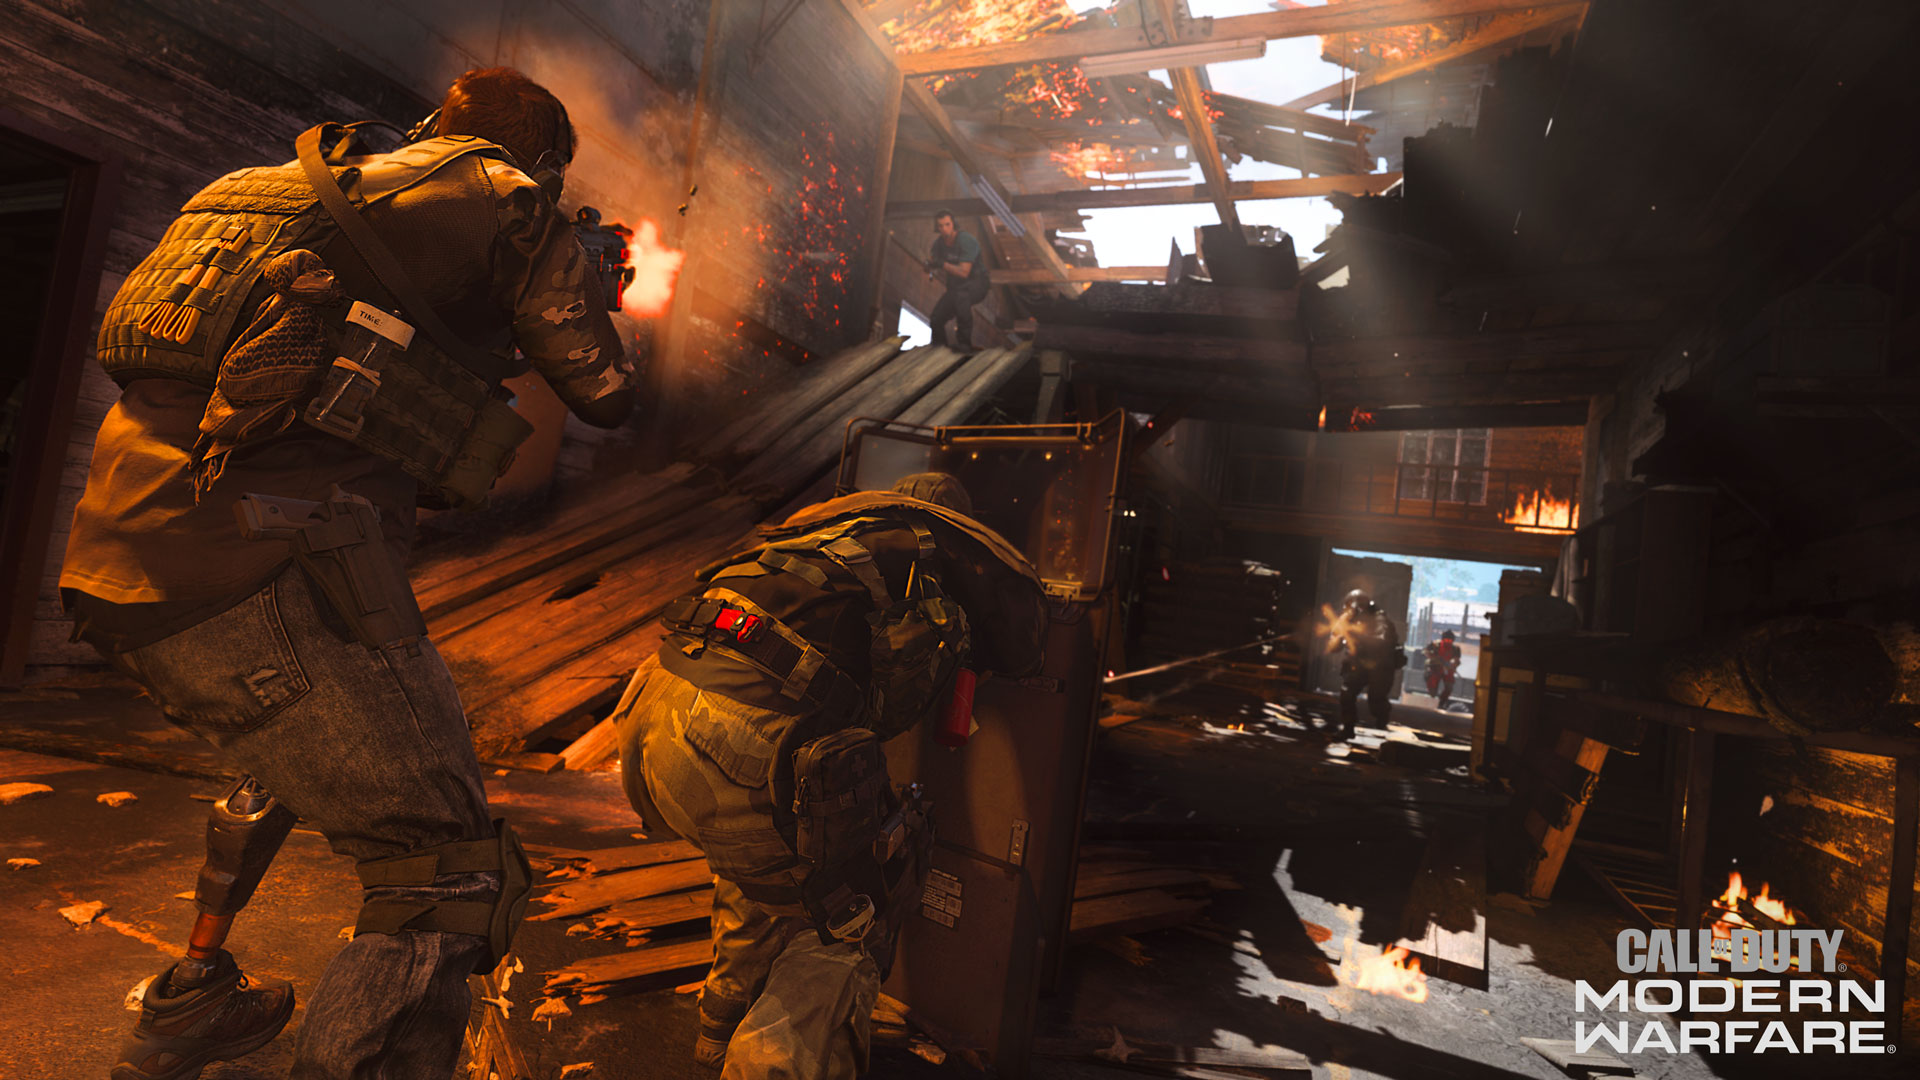 This Week in Call of Duty® - April 13 - Image 4